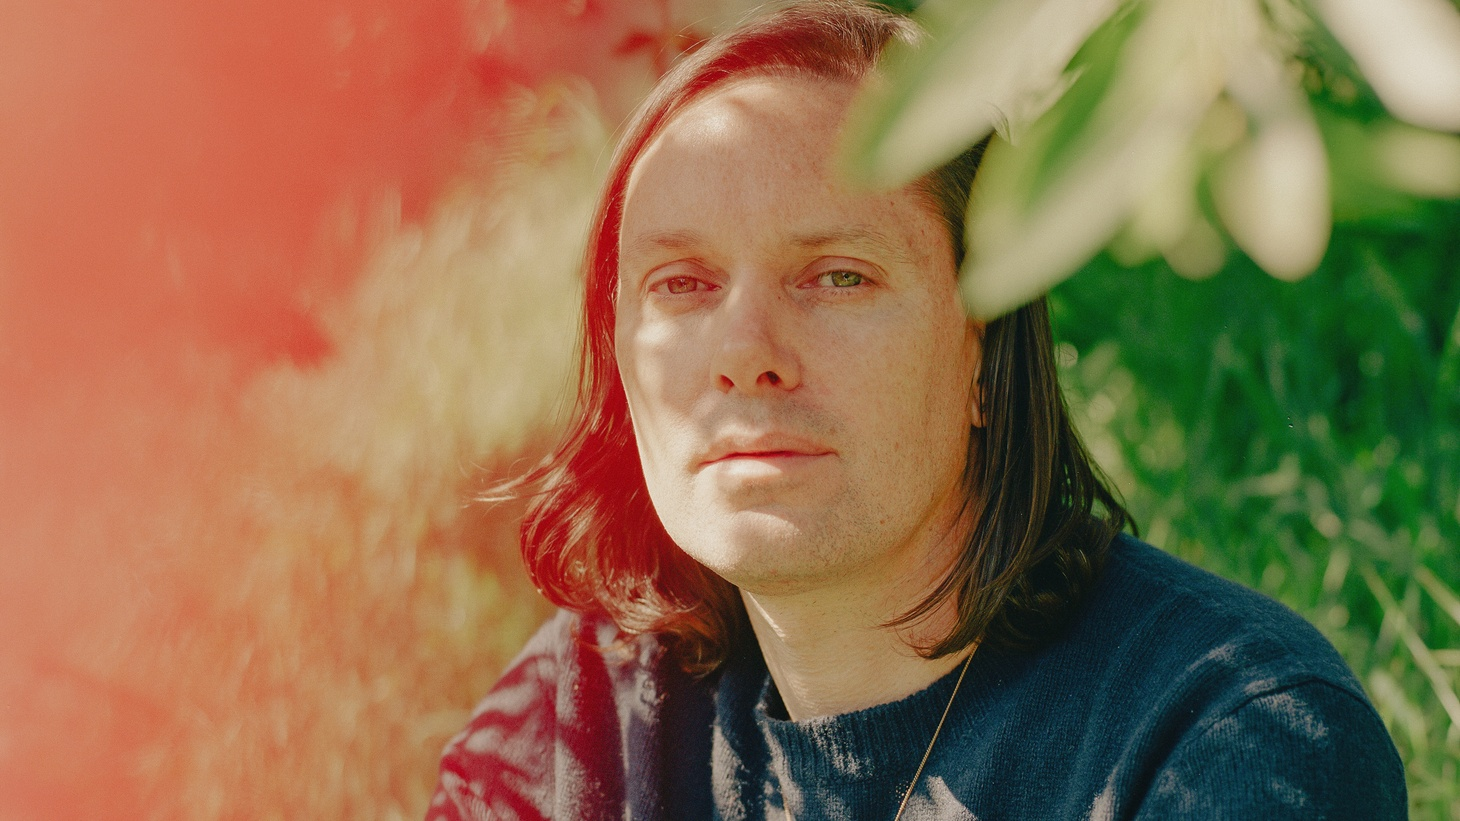 """Mike Milosh — the voice behind Rhye — wrote a song urging us to find beauty in everyday life. Listen to the graceful sounds of """"Beautiful,"""" and let it inspire you for the weekend ahead."""